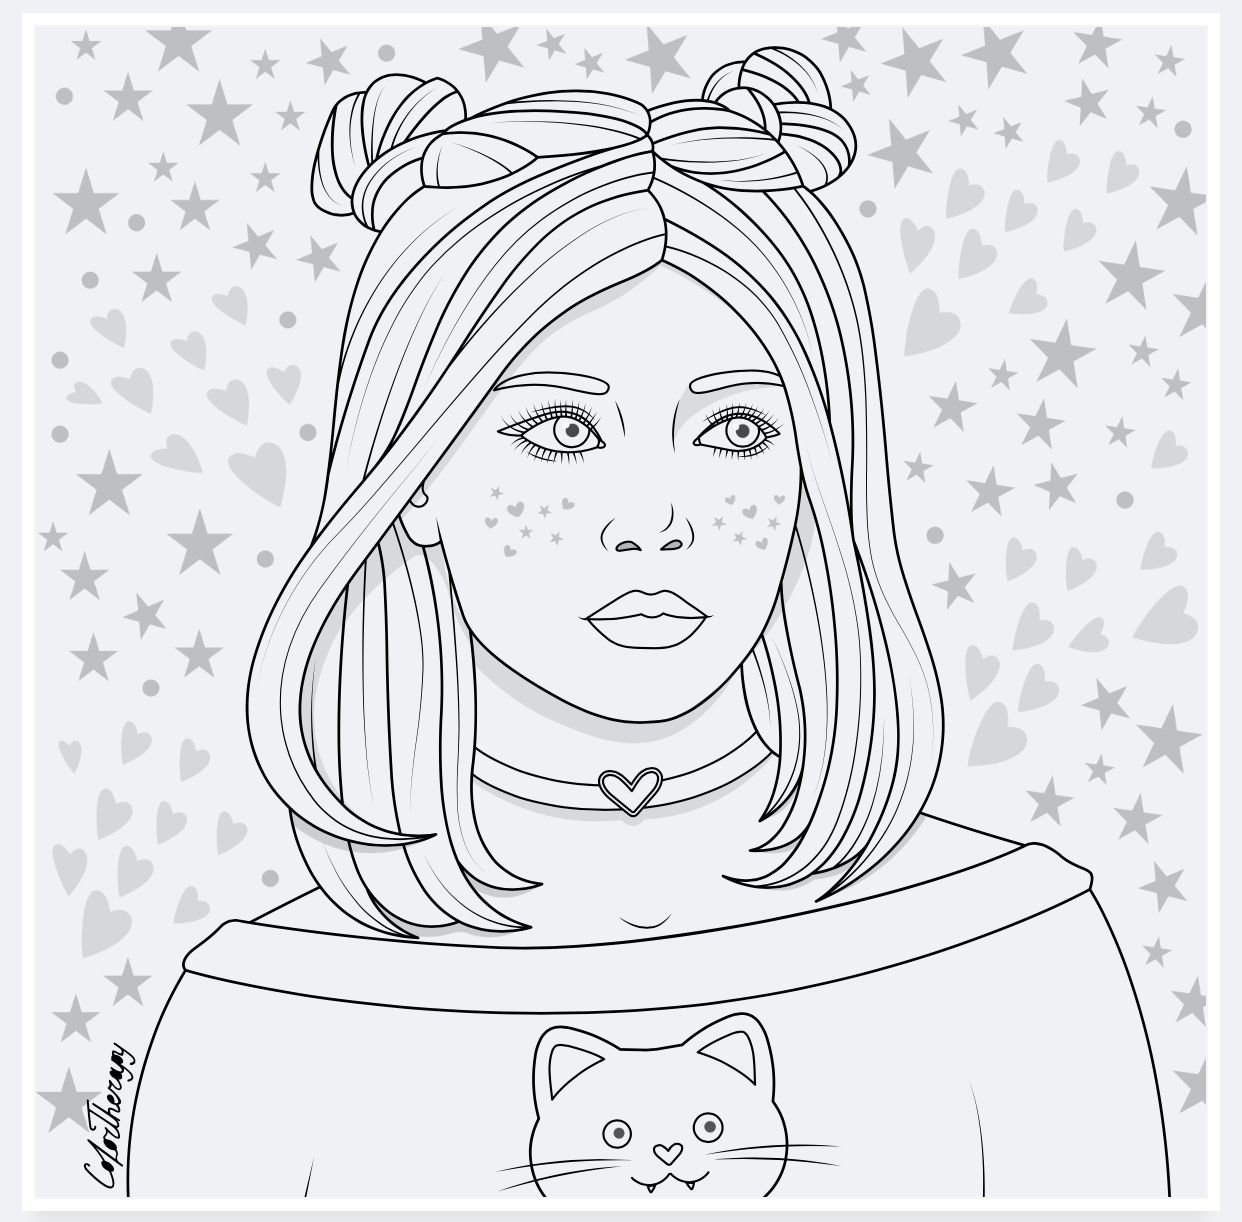 Colortherapy In 2020 Coloring Book Art Cute Coloring Pages Cool Coloring Pages